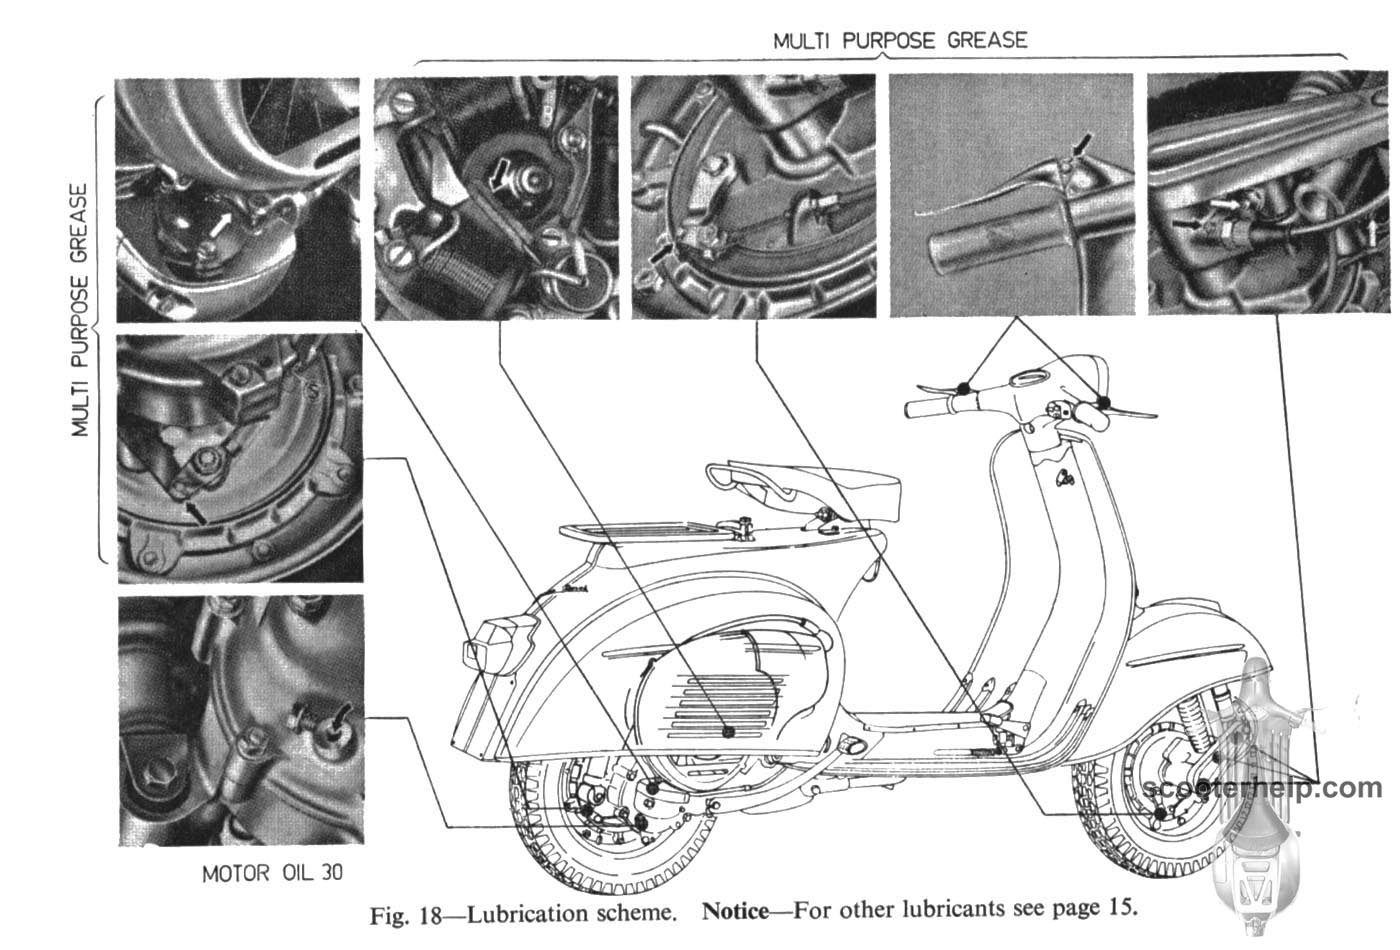 vespa sprint wiring diagram vespa image wiring diagram vespa 150 sprint owner s manual on vespa sprint wiring diagram